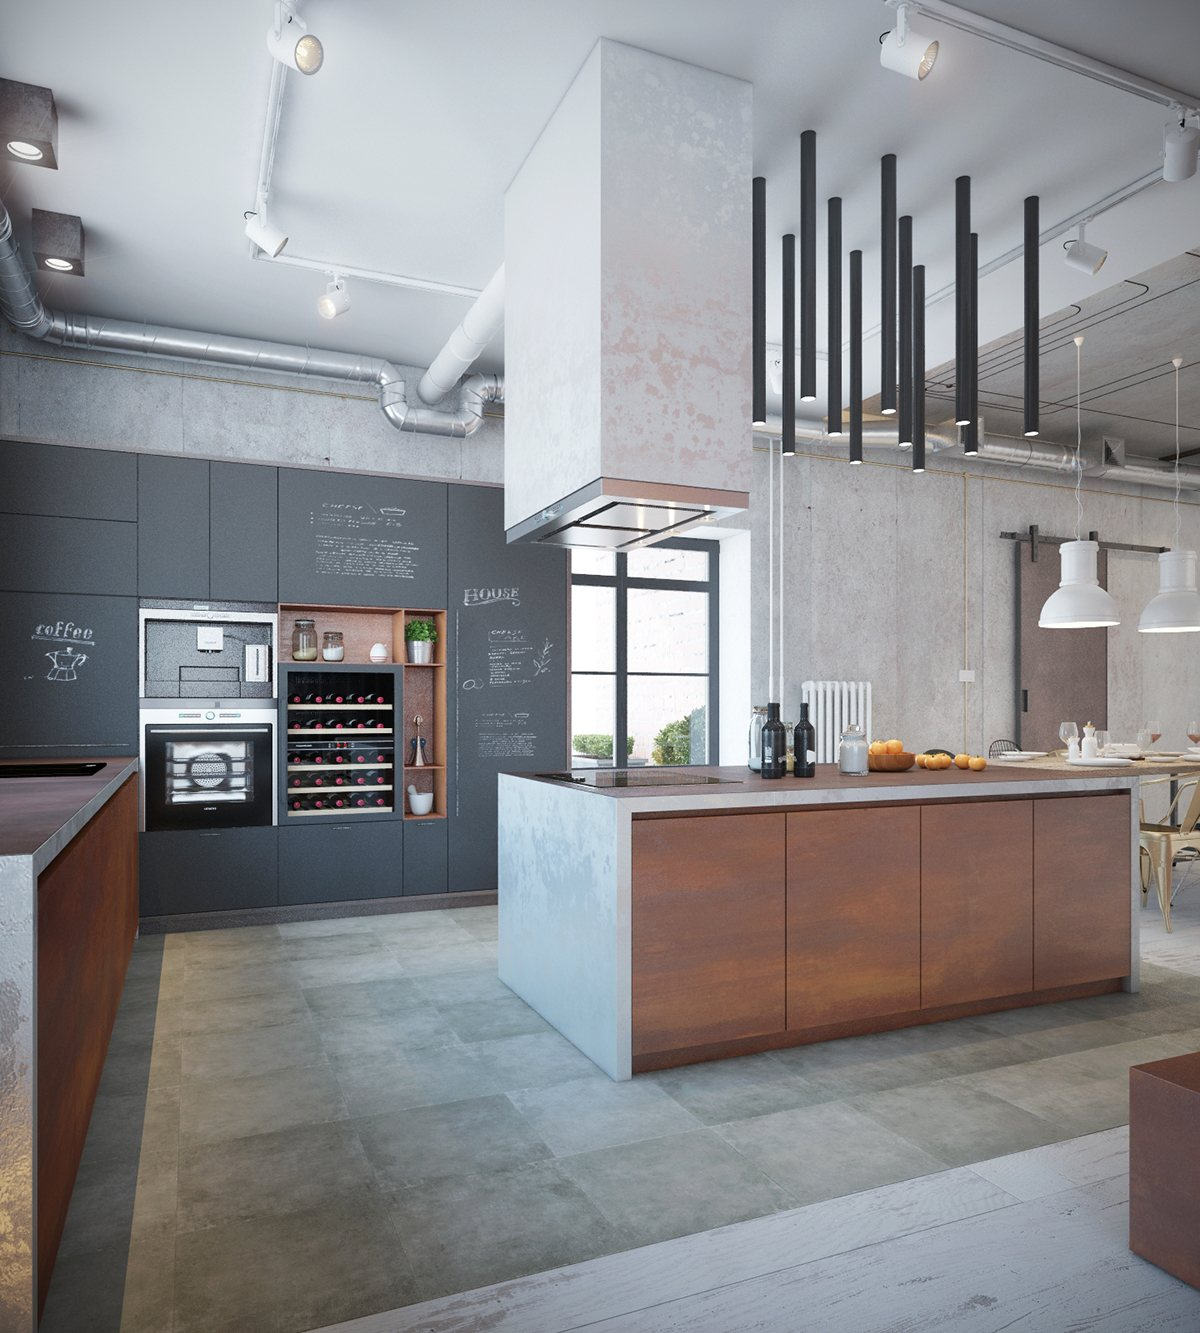 House Interior Design Kitchen: Industrial House Design And Decor For Stylish Appearance